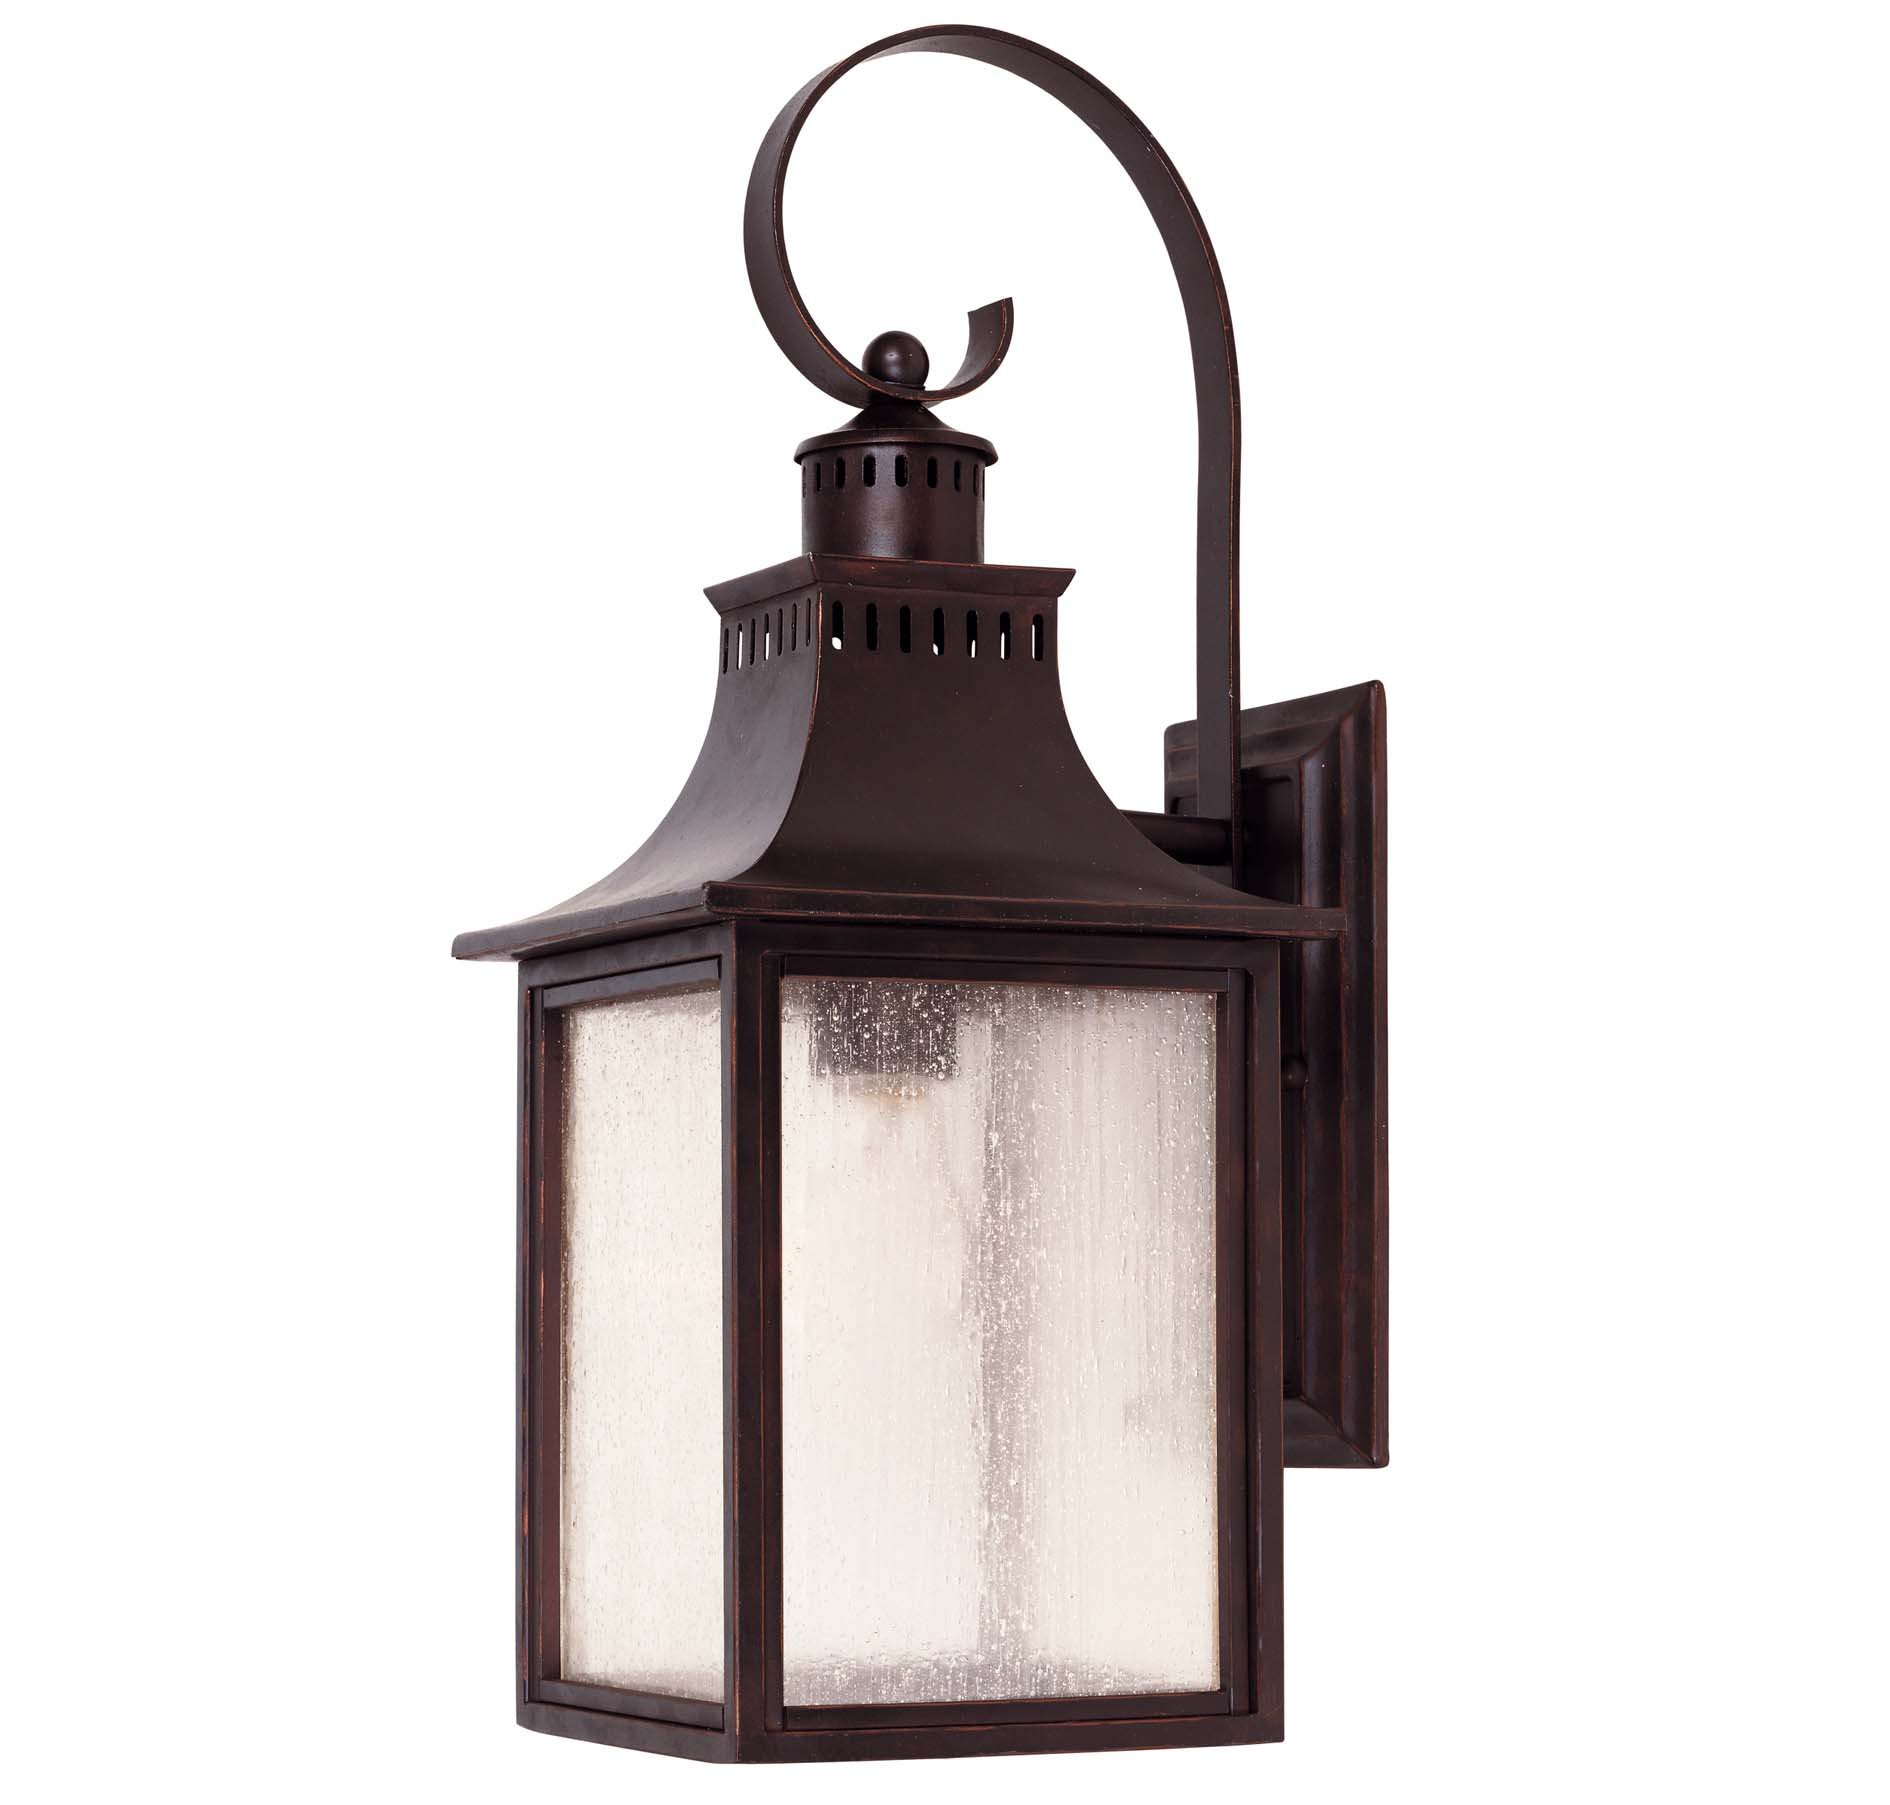 Savoy House Lighting 5-258-13 Monte Grande Collection 1-Light Outdoor Wall Mount 17.75-Inch Lantern, English Bronze with Pale Cream Seeded Glass by Savoy House Lighting